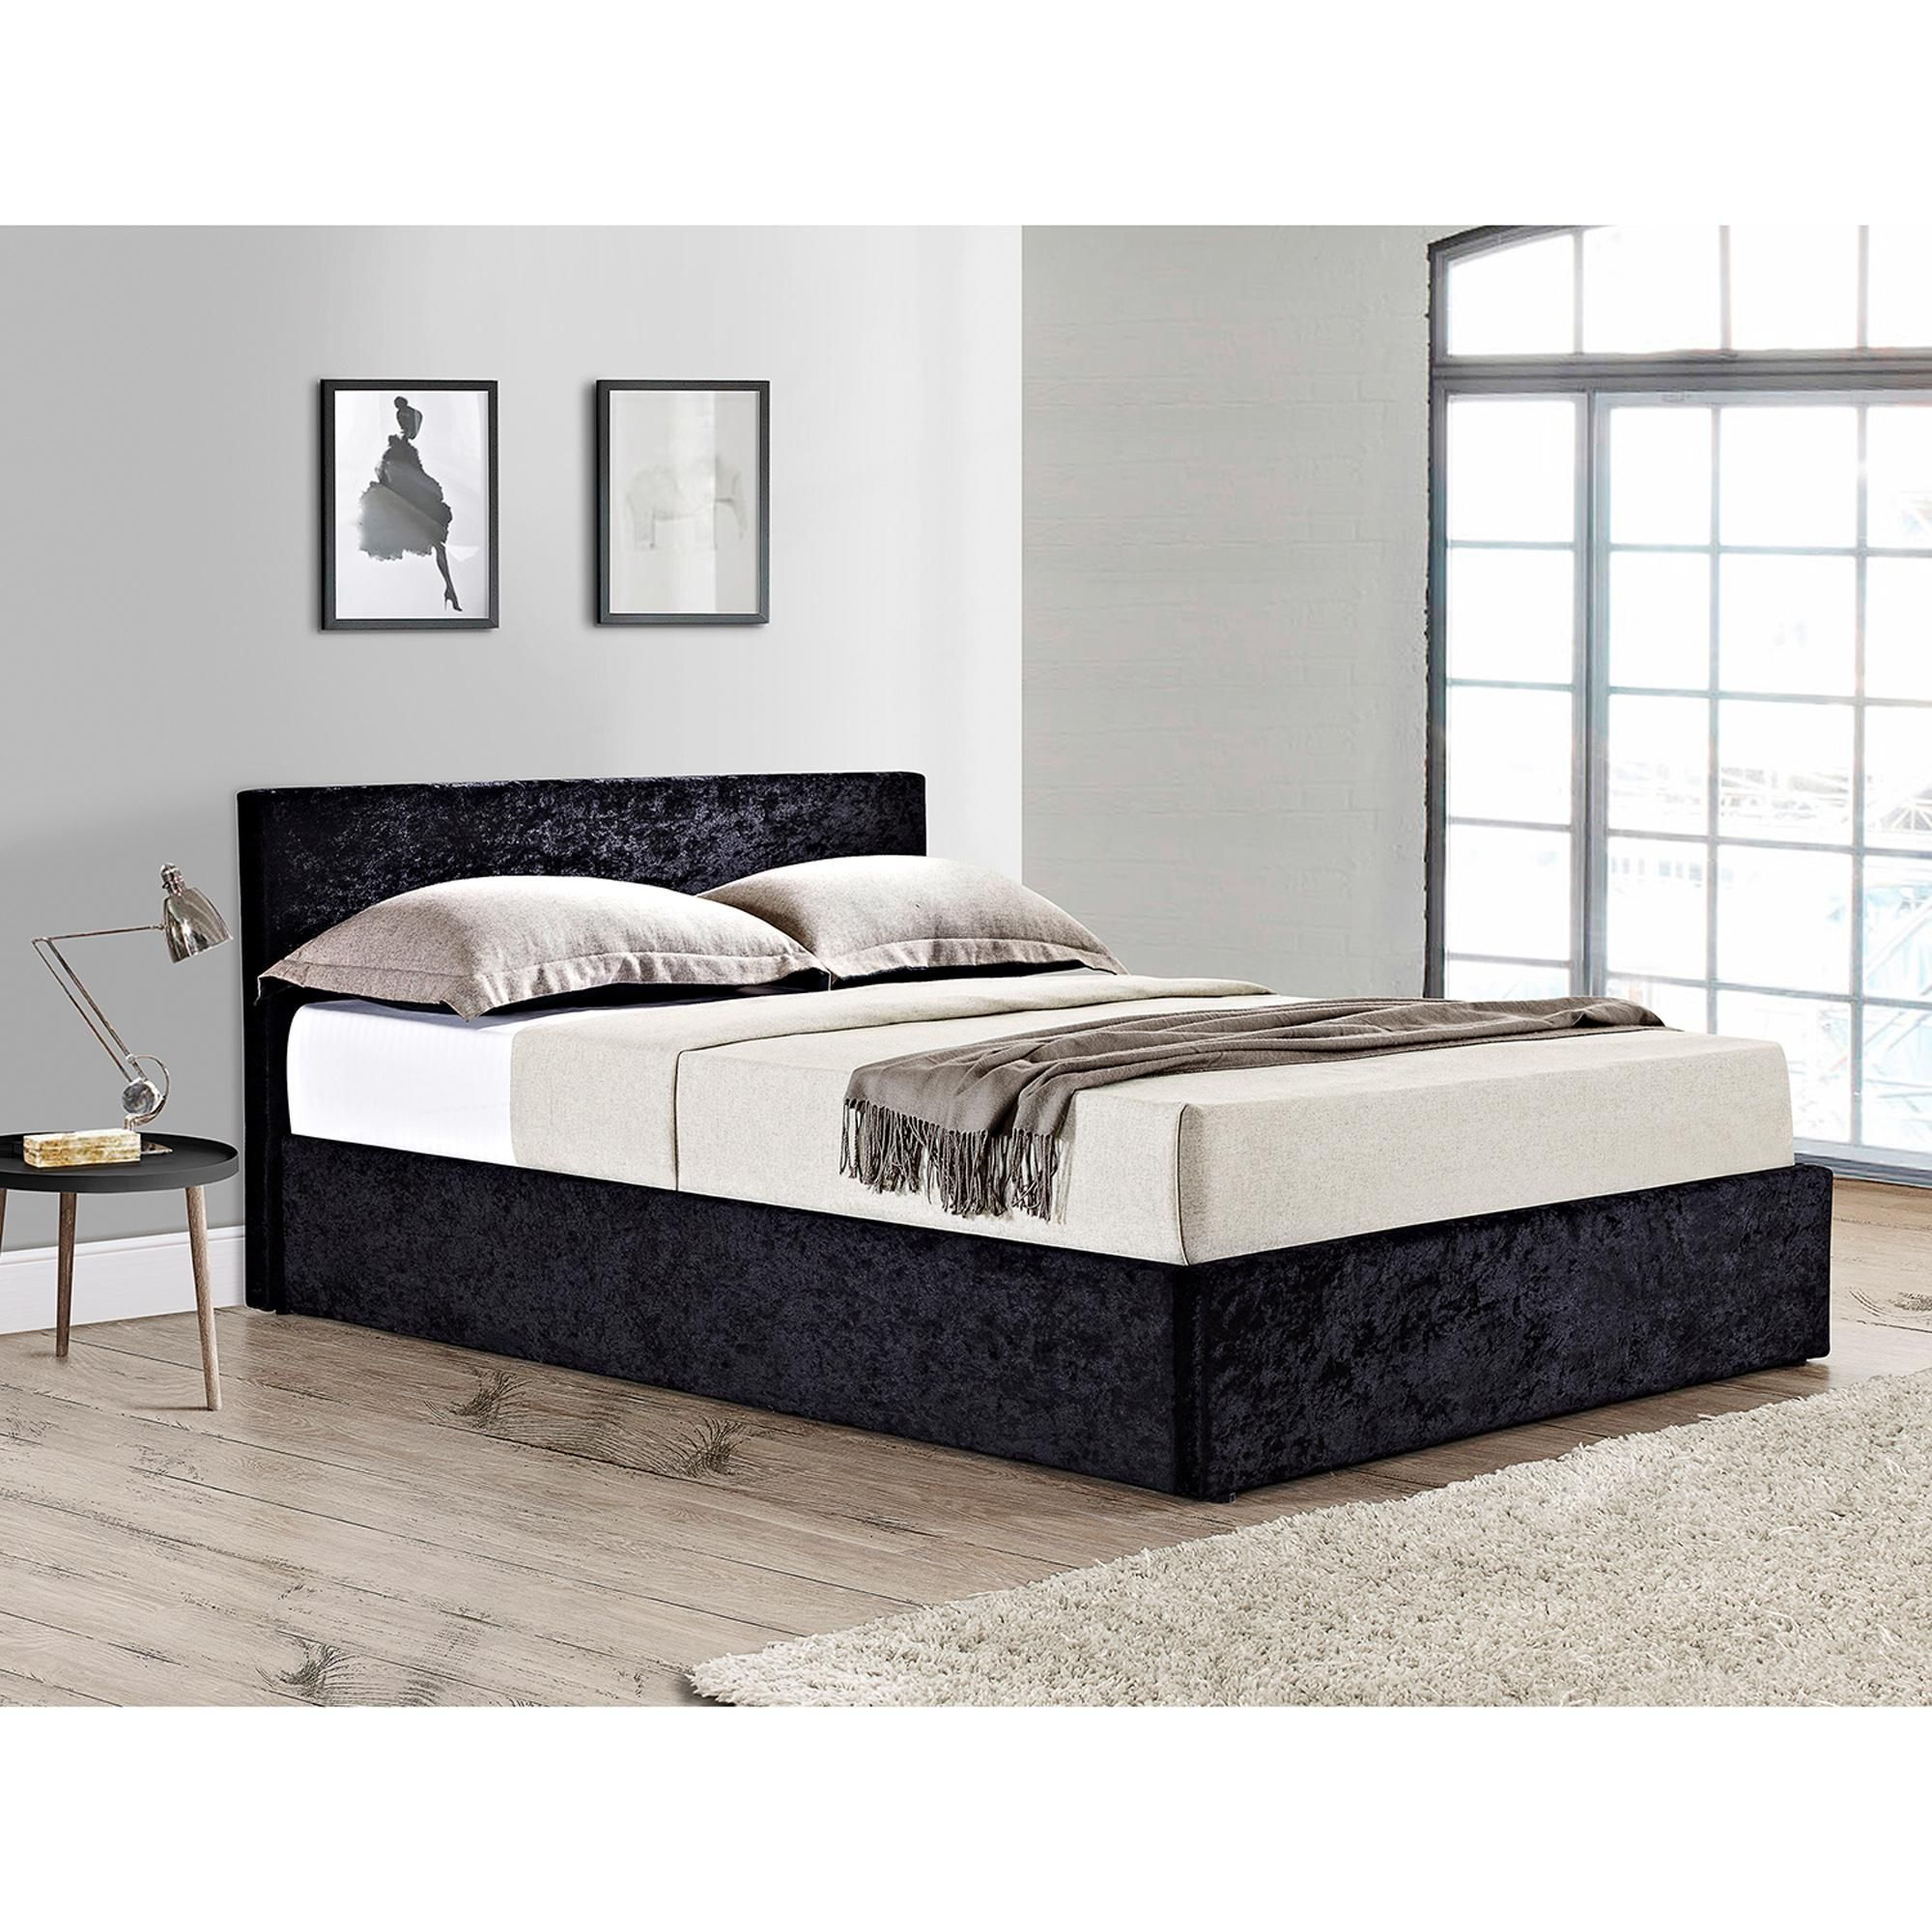 Berlin Crushed Velvet Ottoman Bed In 2020 Ottoman Bed Crushed